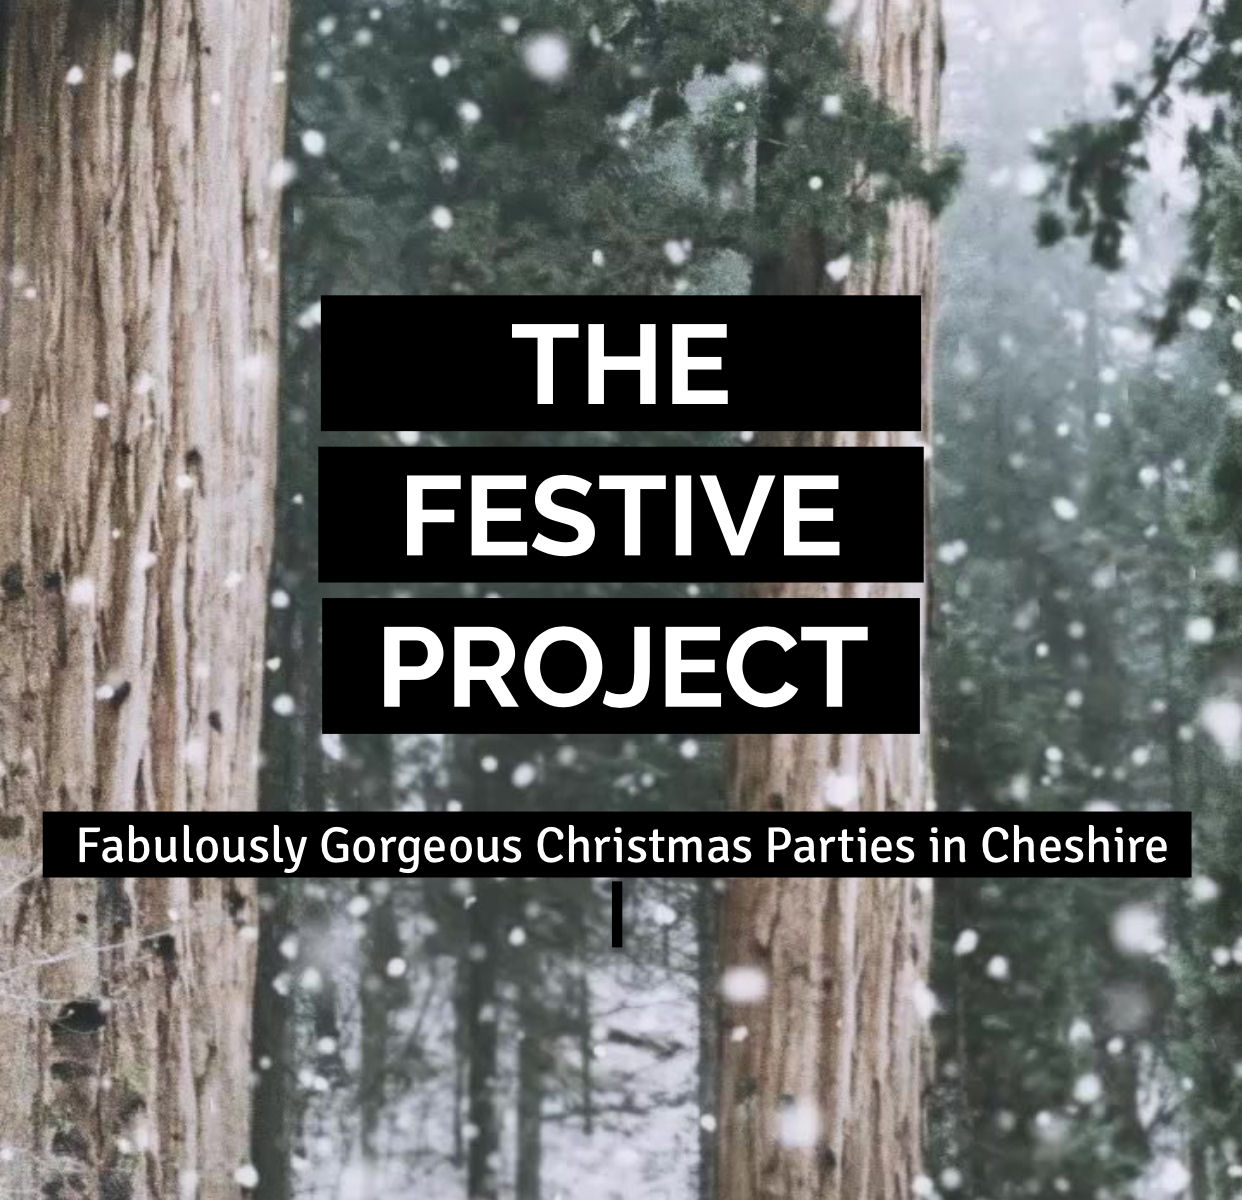 The Festive Project - Friday 22nd December